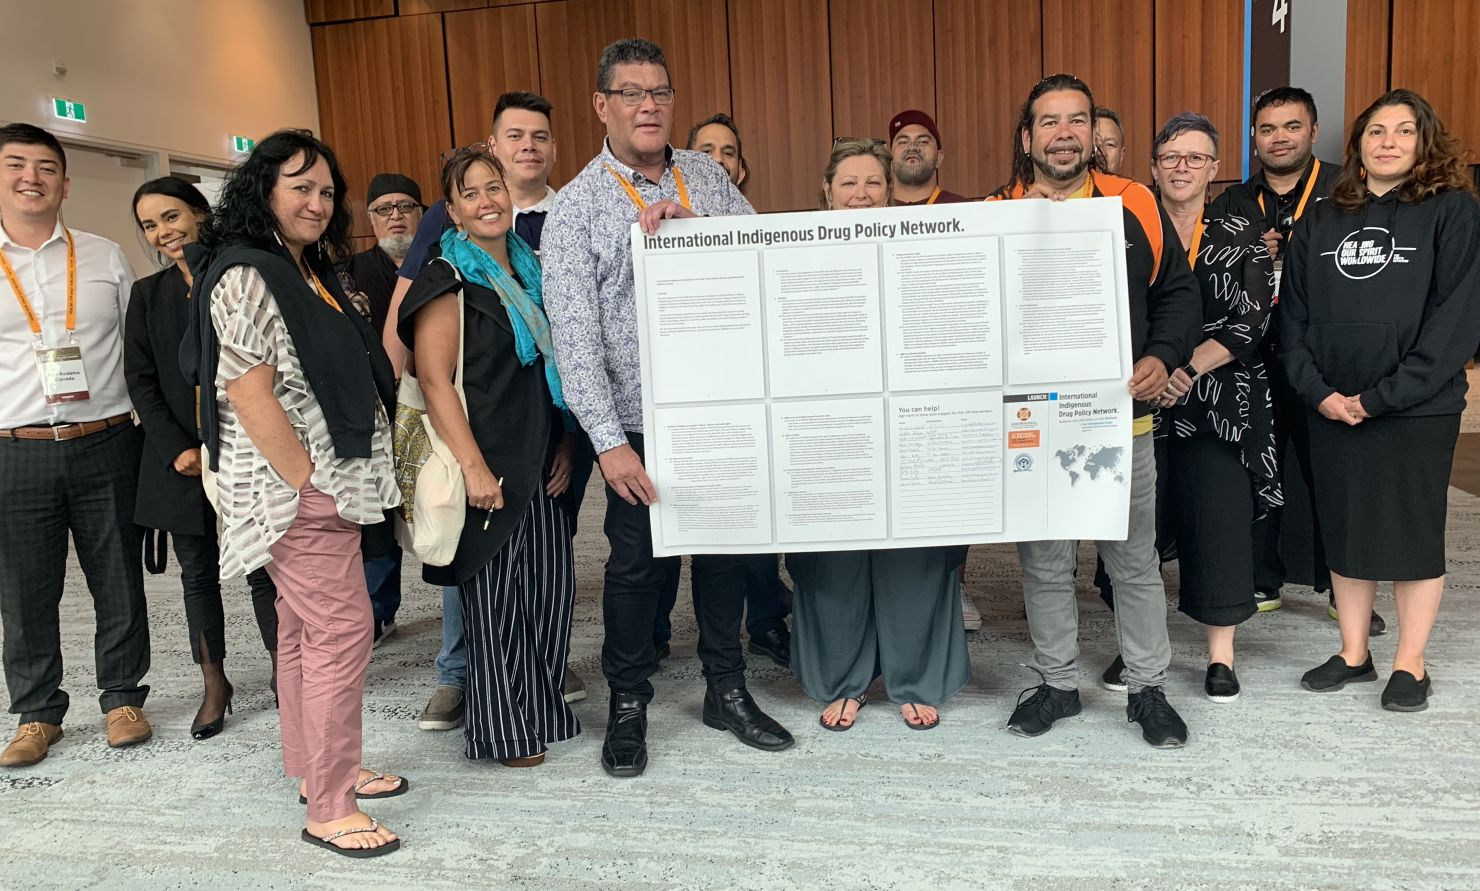 International Indigenous Drug Policy Network launch - group photo